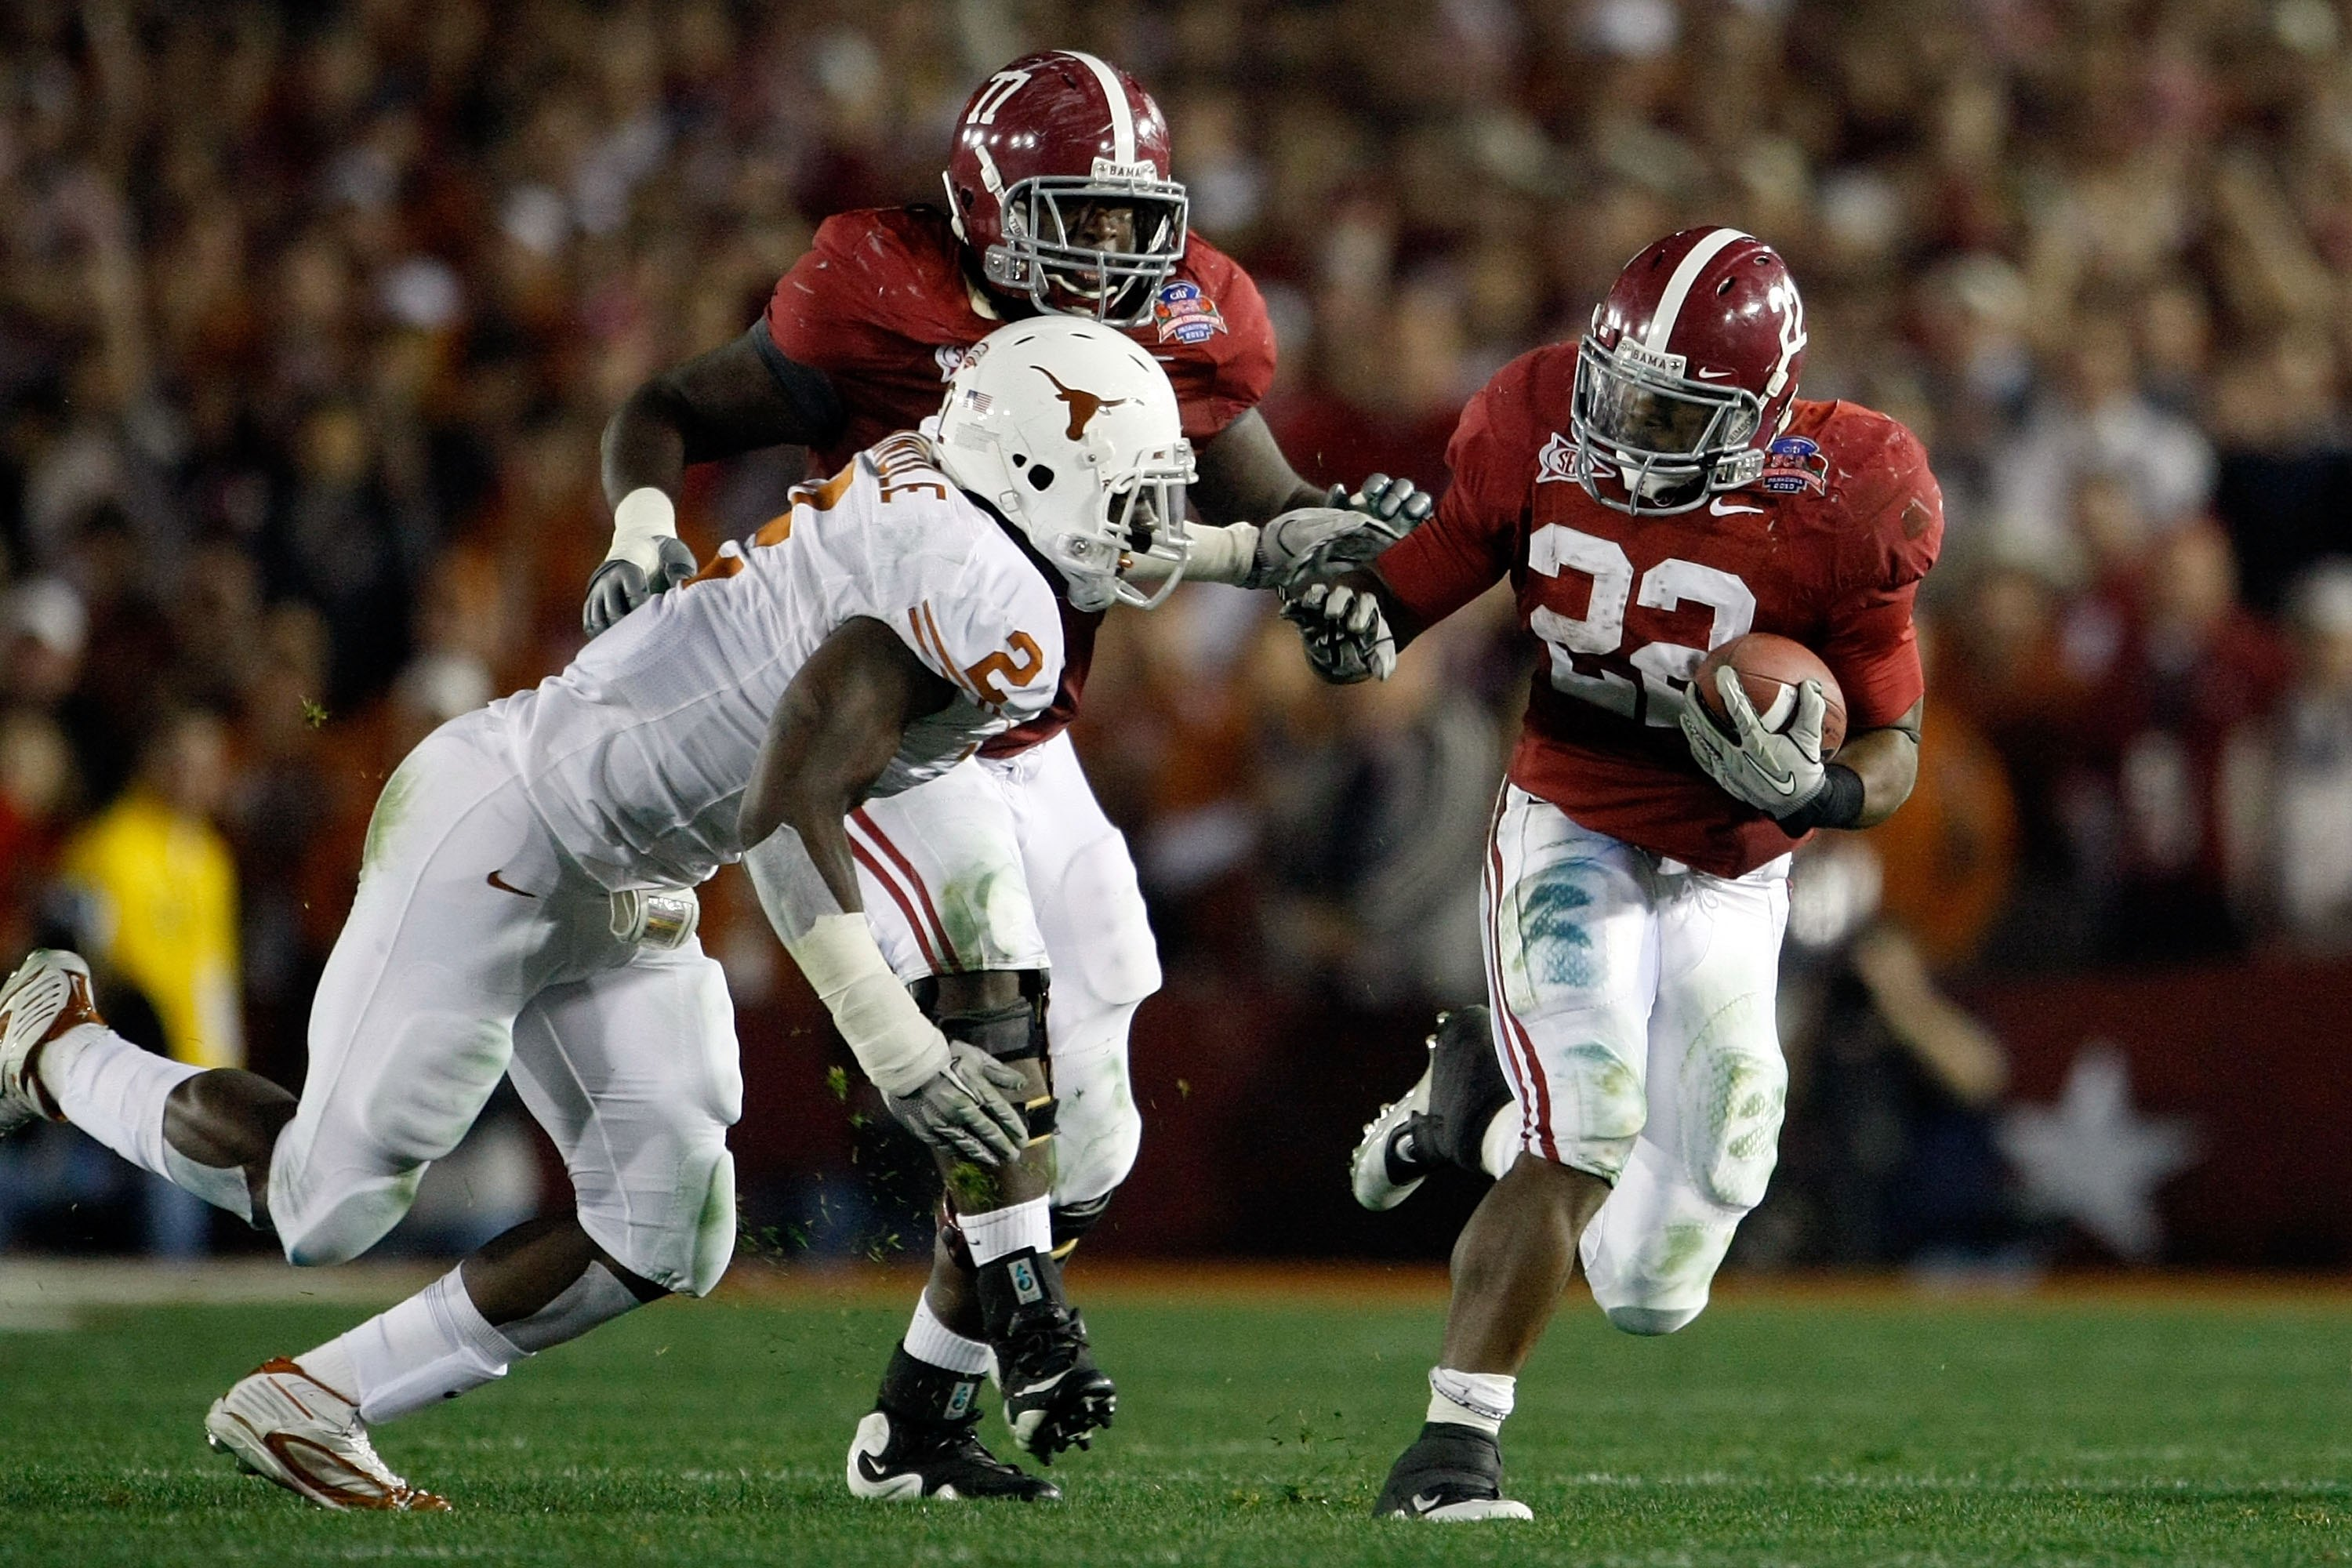 PASADENA, CA - JANUARY 07:  Running back Mark Ingram #22 of the Alabama Crimson Tide runs with the ball against the Texas Longhorns during the Citi BCS National Championship game at the Rose Bowl on January 7, 2010 in Pasadena, California.  (Photo by Jeff